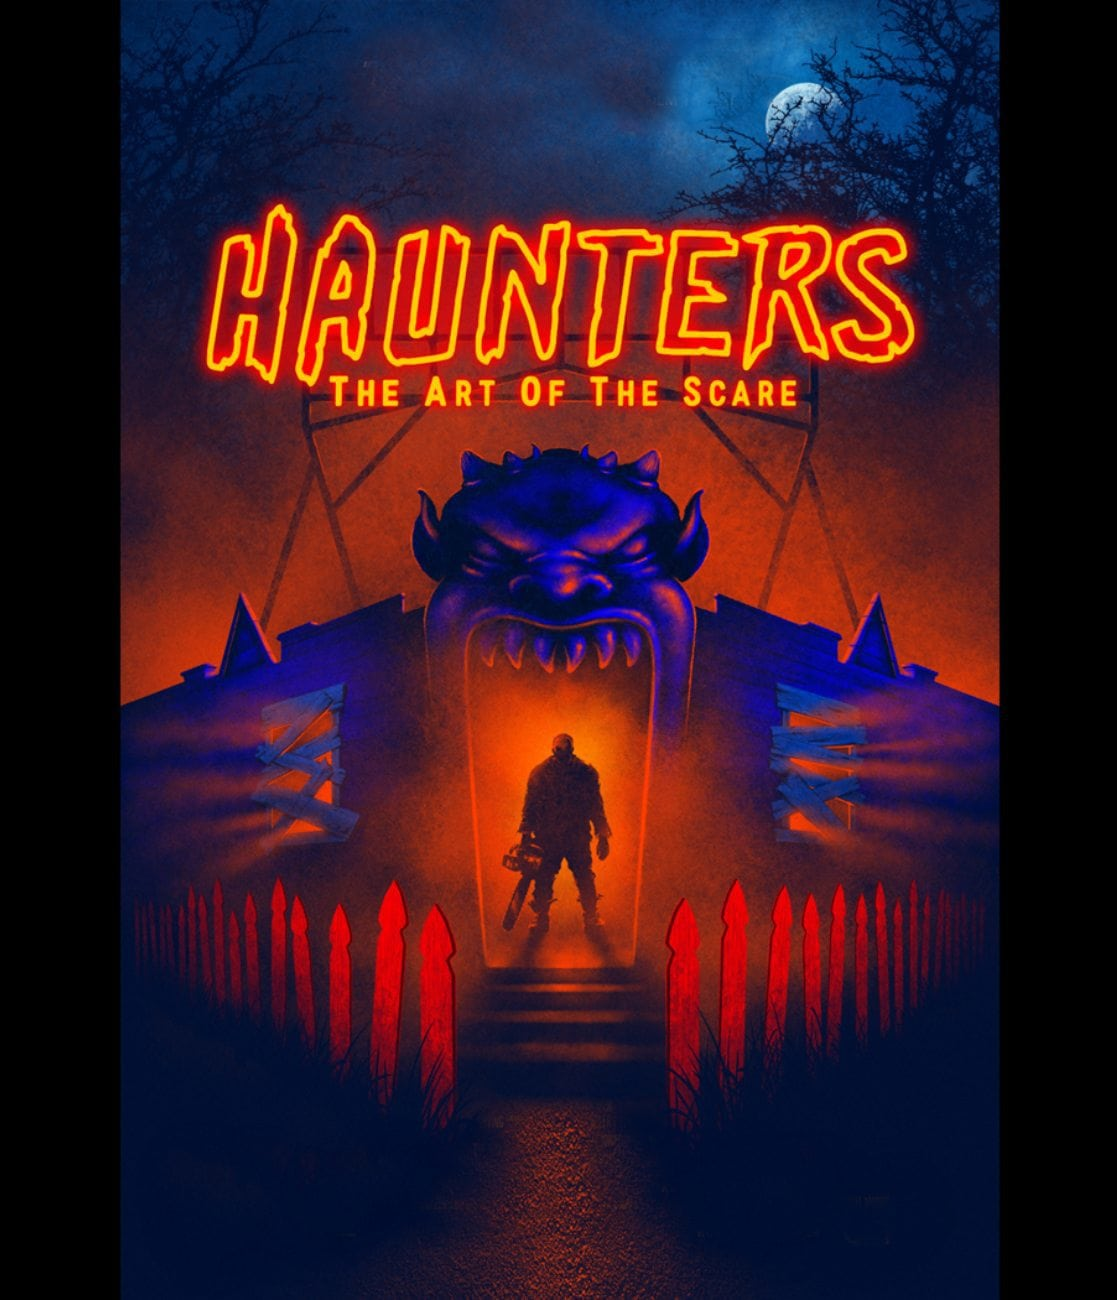 Haunters: The Art of the Scare - Jon Schnitzer - ScareLA Panel